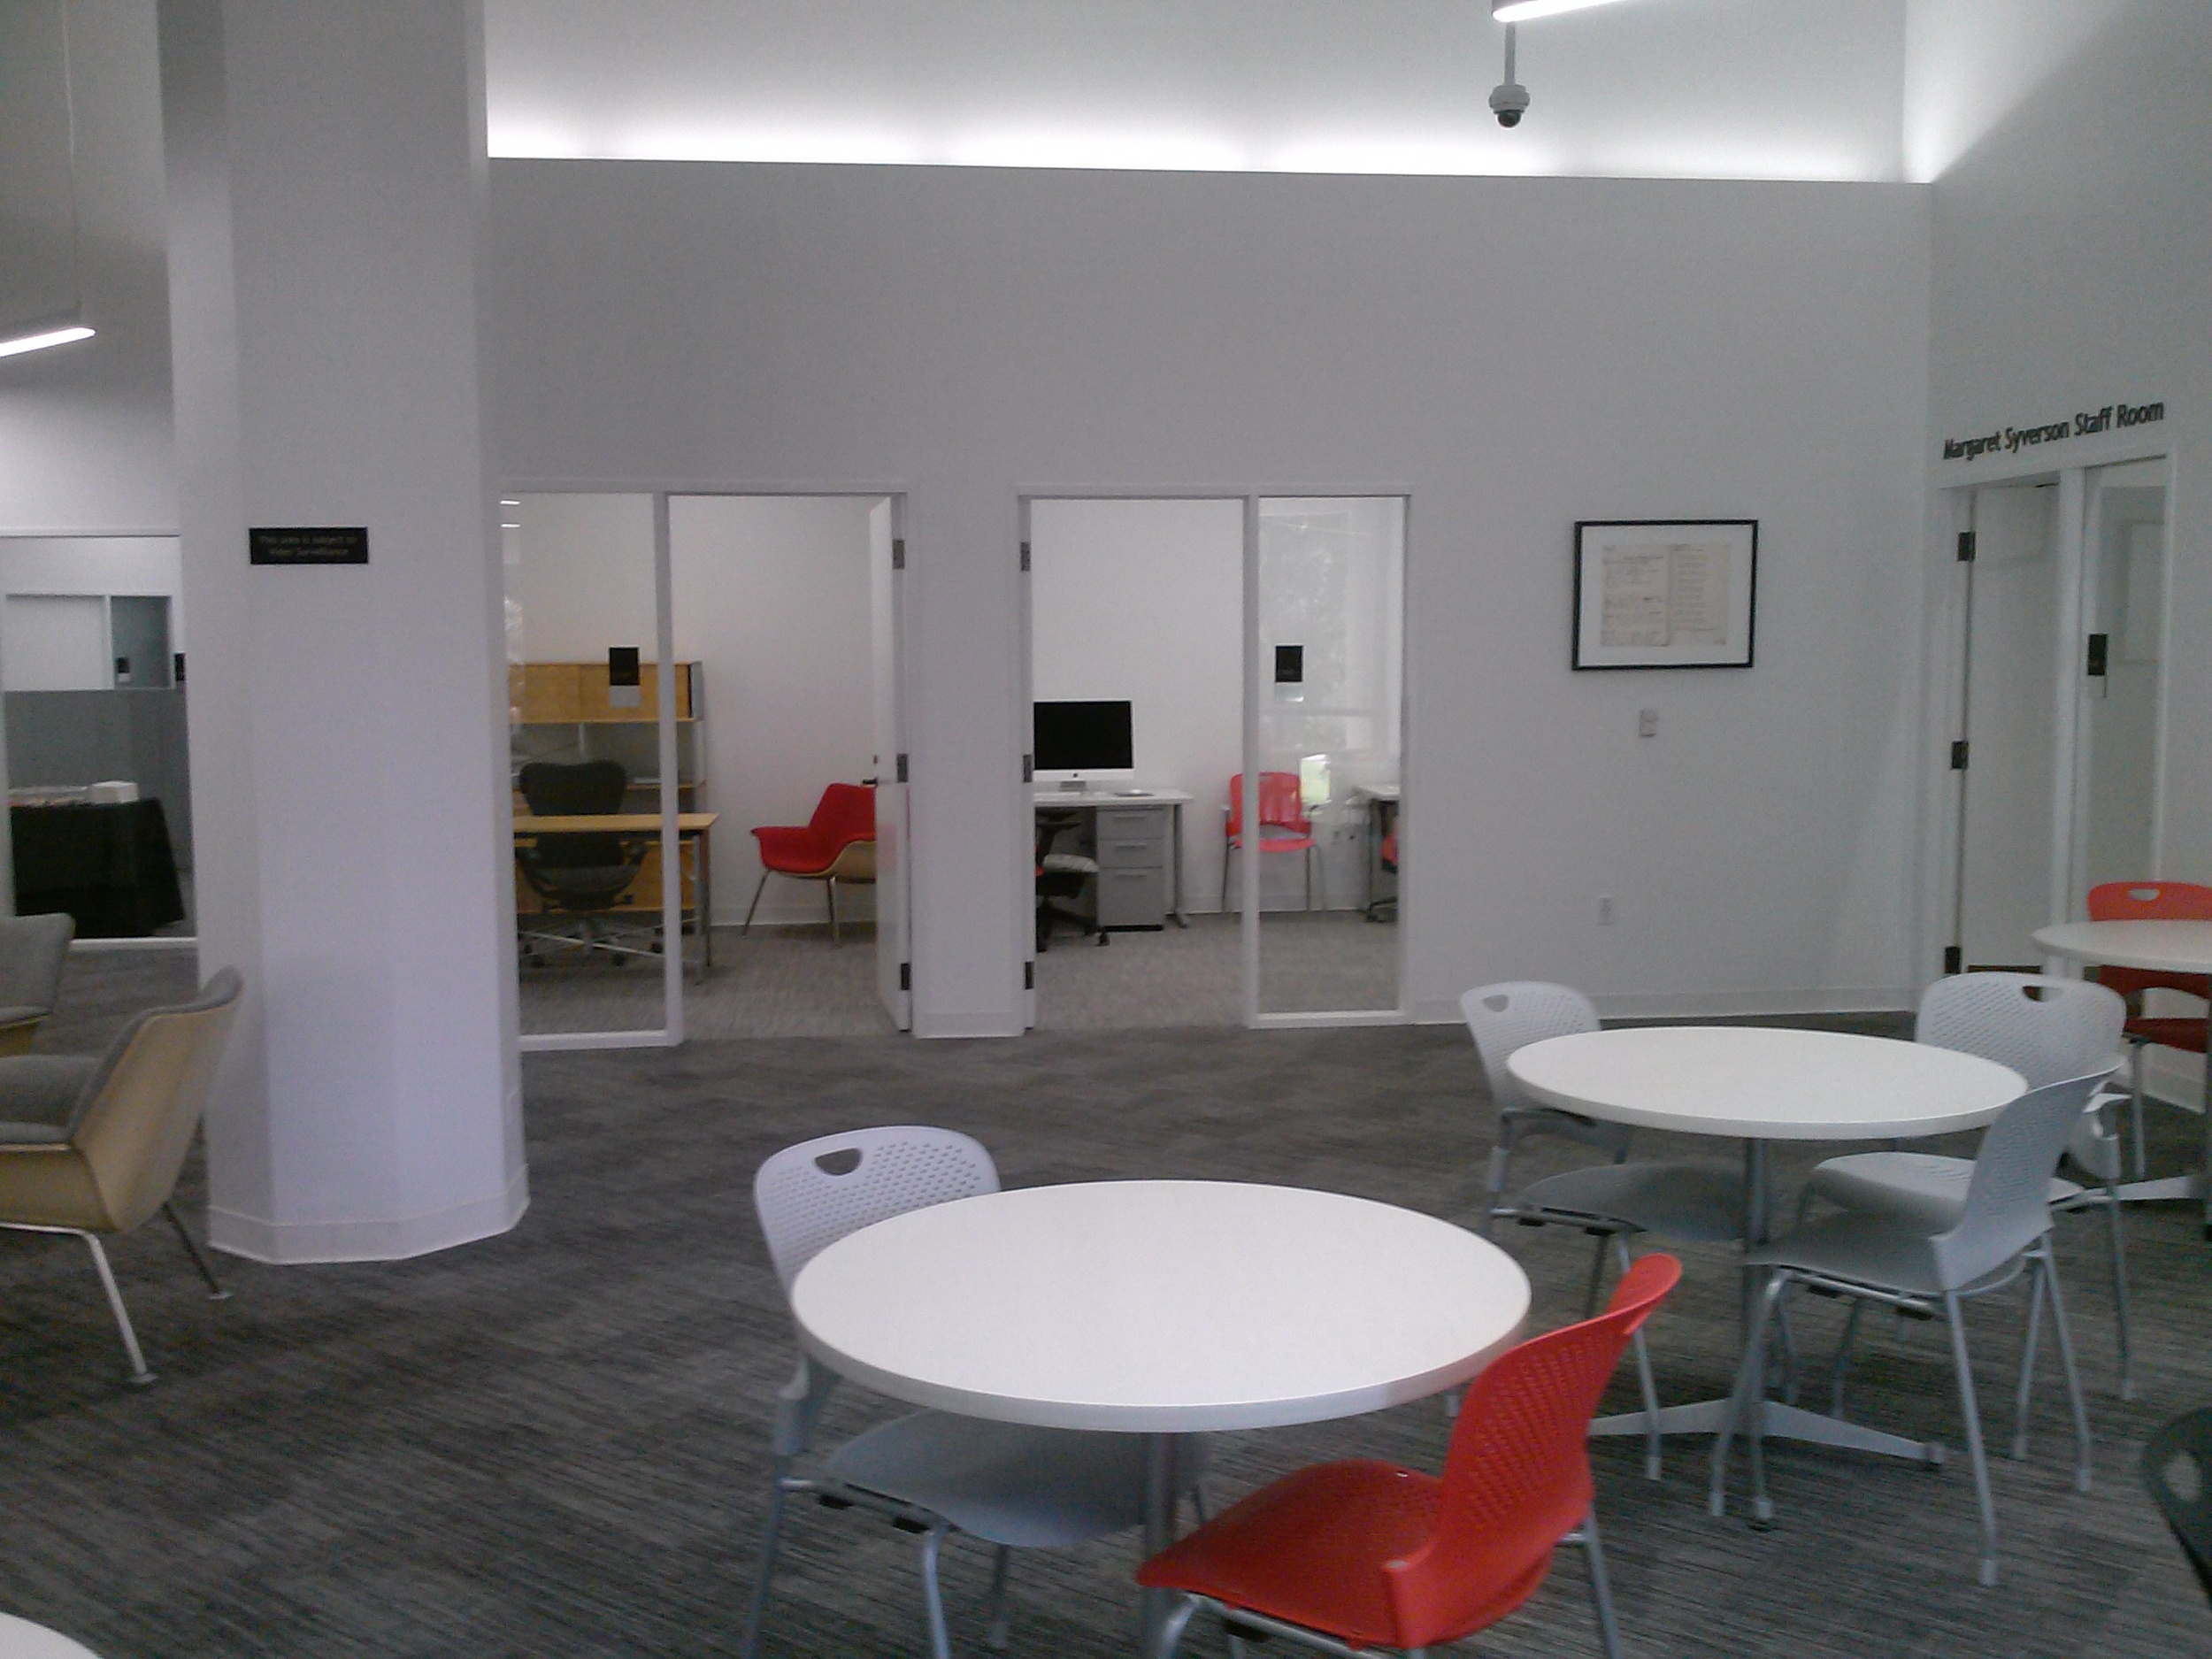 Administrative Offices, Staff Lounge